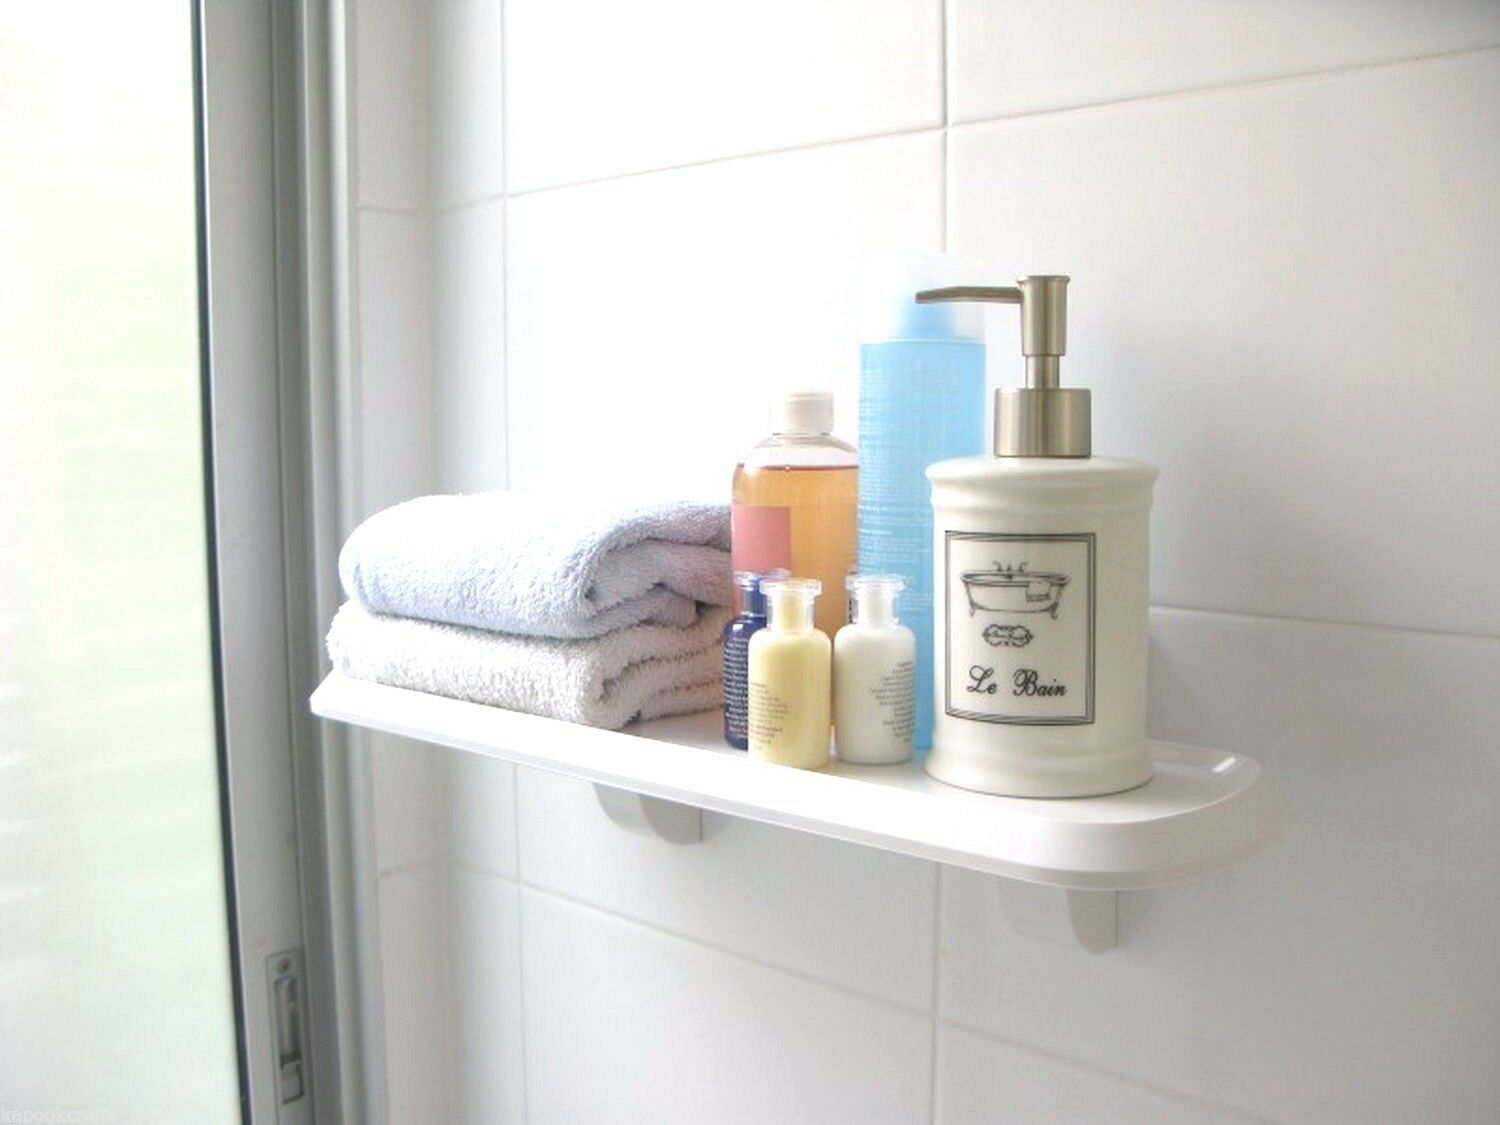 3m Command Bathroom White Plate Shelf With Water-resistant Strips ...